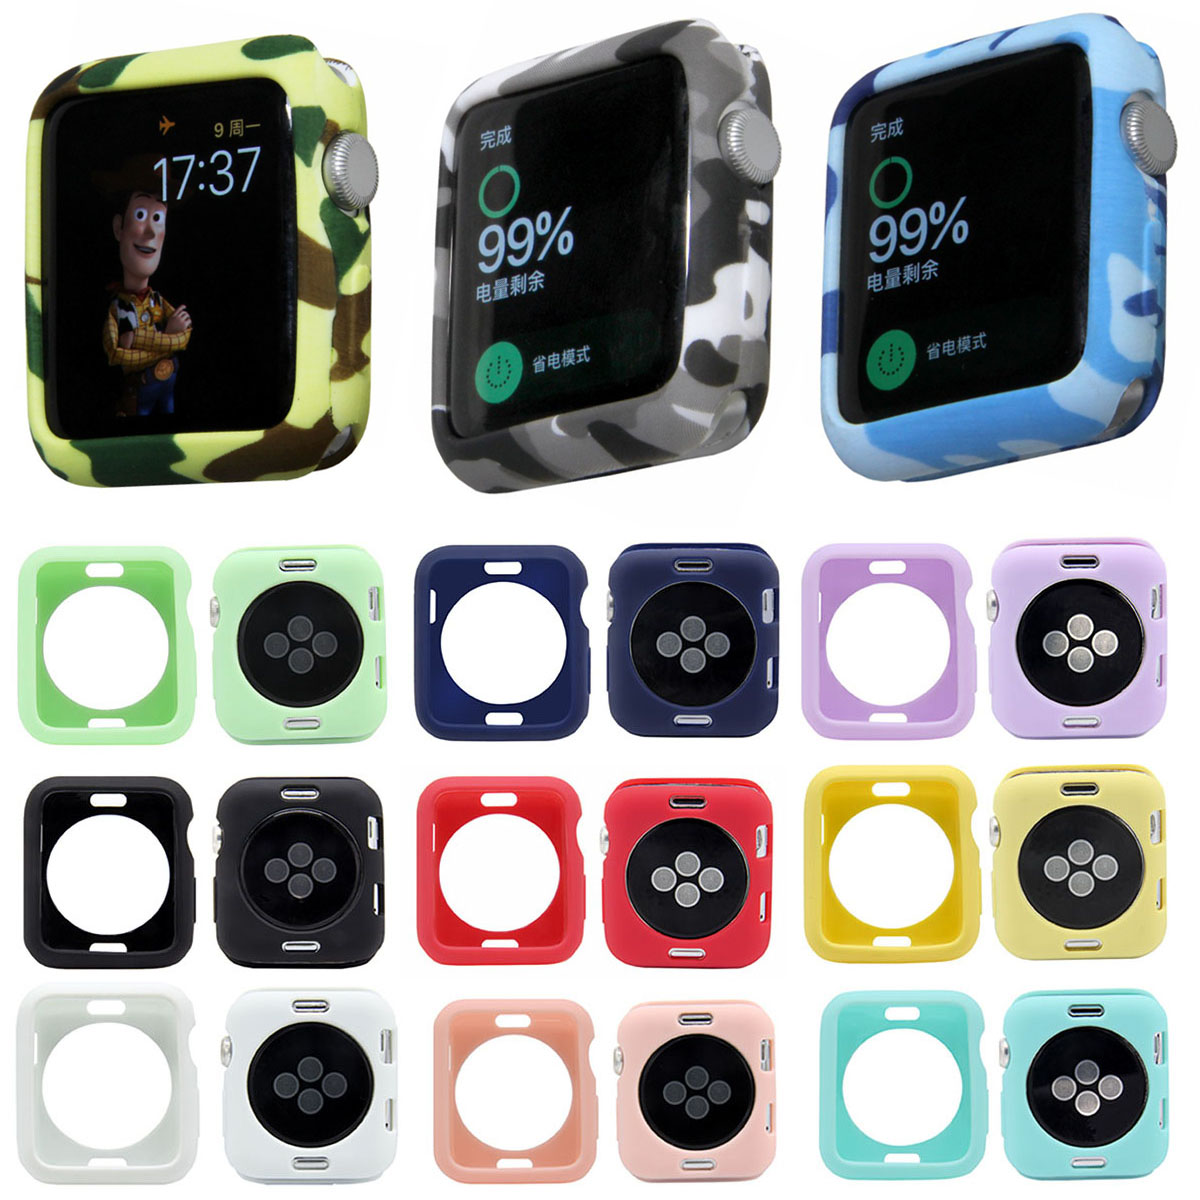 Camouflage Soft TPU Watch Case for Apple Watch Cover 42mm 38mm Series 1 2 3 Protective Silicone Case for iWatch Shell Band series 1 2 3 soft silicone case for apple watch cover 38mm 42mm fashion plated tpu protective cover for iwatch